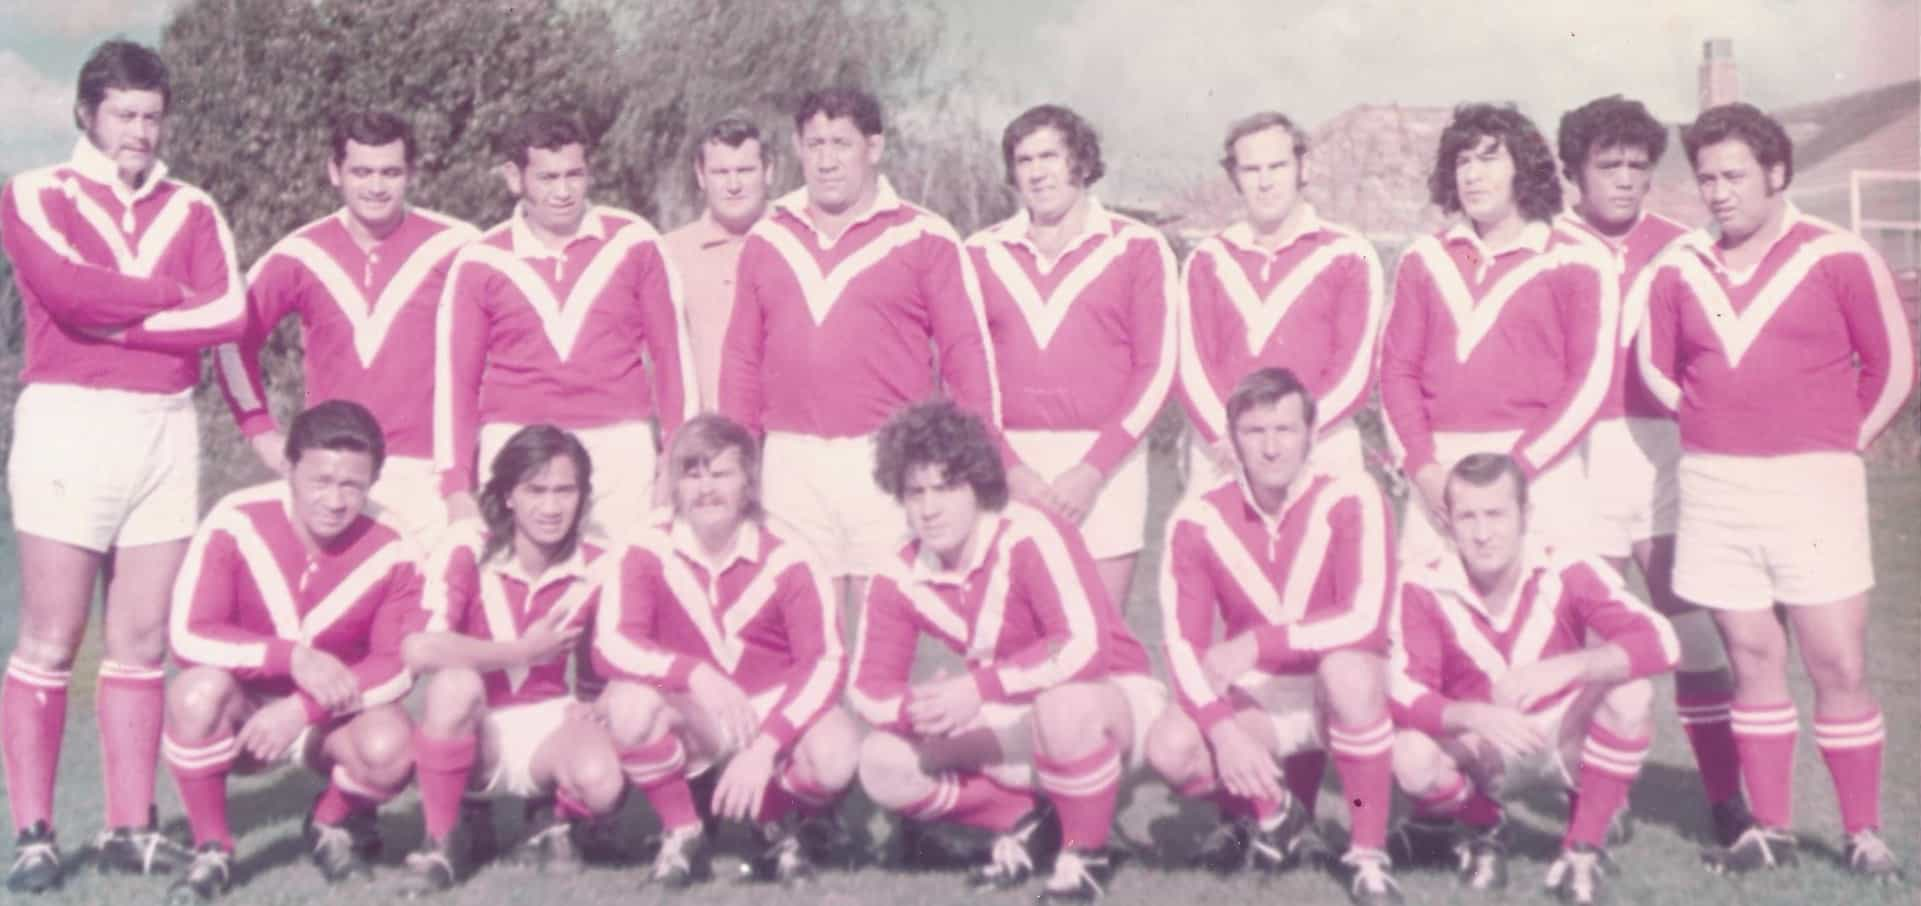 The Maritime rugby league club, the watersides' team. Dilworth is on the far left, standing.